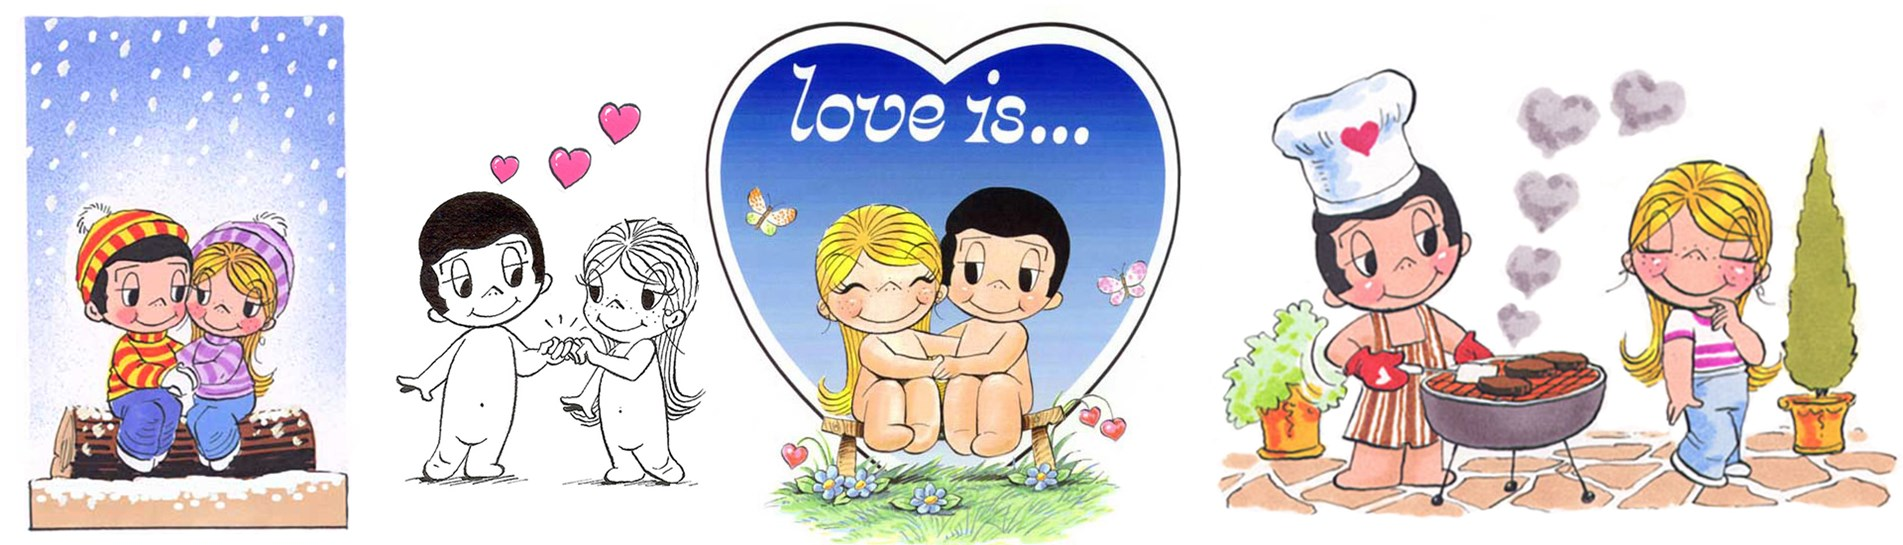 Love is... 50 years young! | Artful Asprey Cartoons